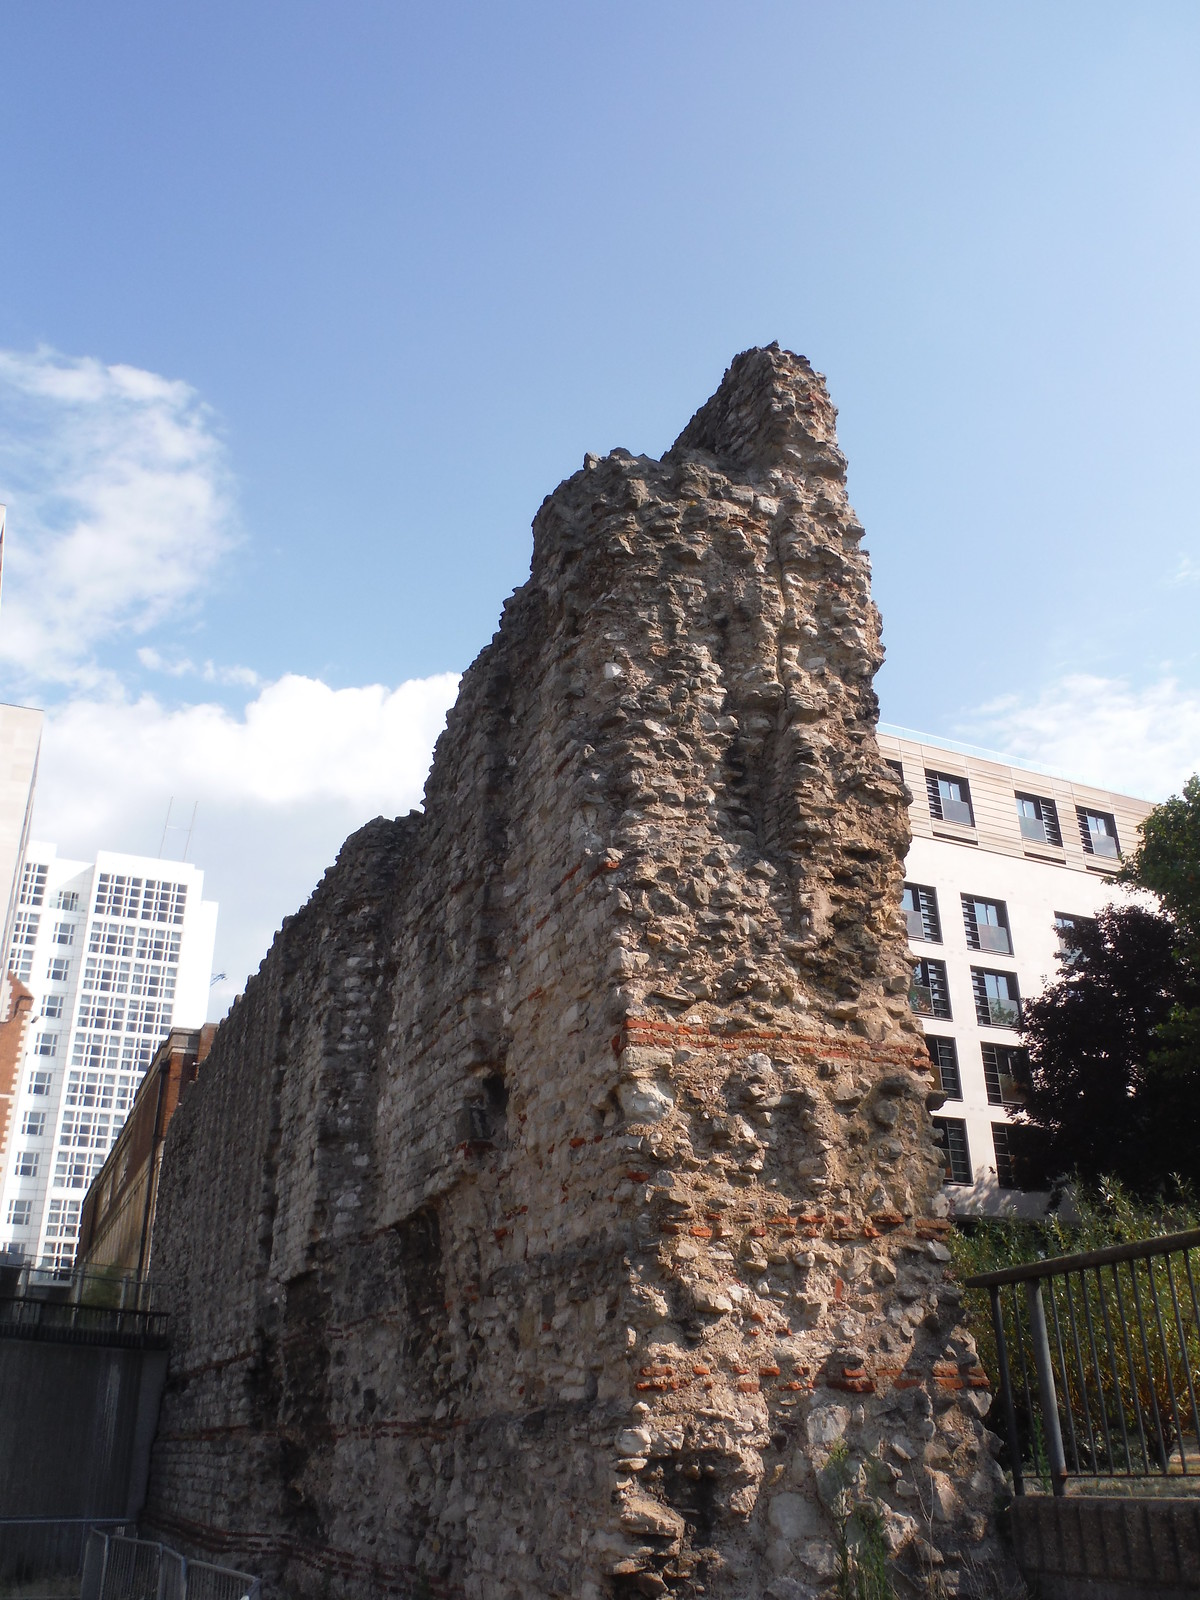 The Wall, Tower Hill SWC Short Walk 47 - The London Wall